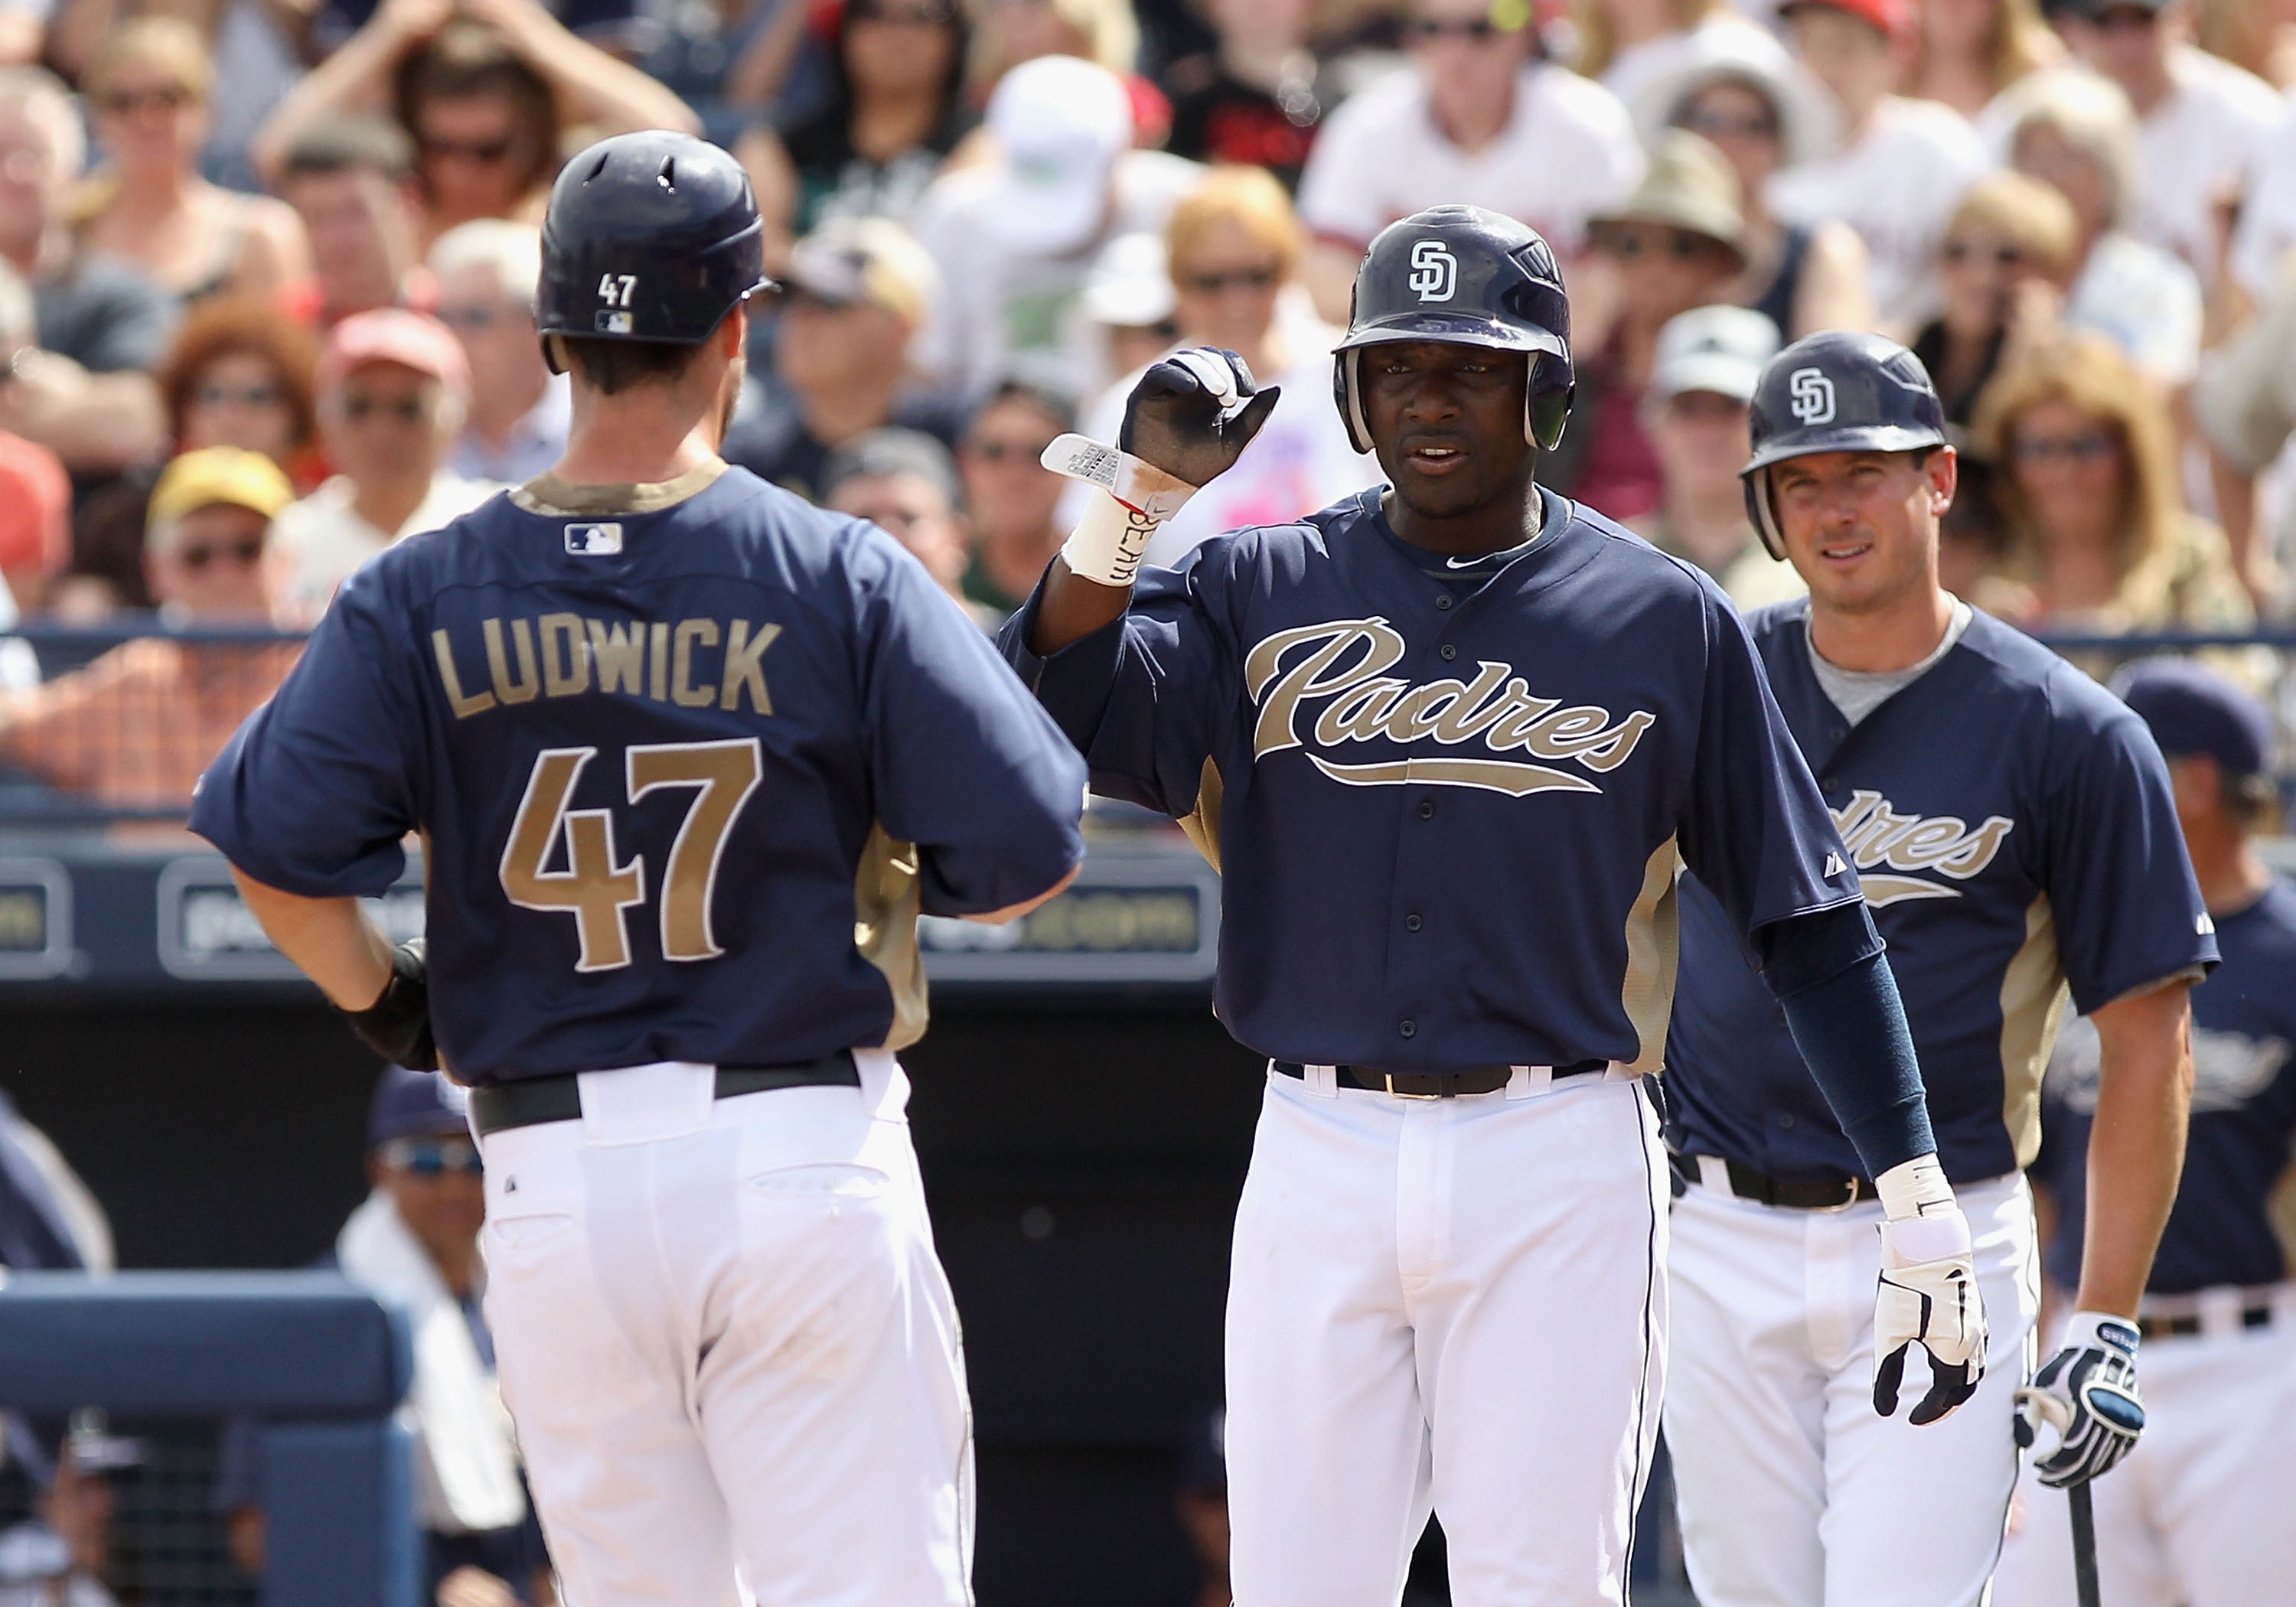 PEORIA, AZ - MARCH 15:  Ryan Ludwick #47 of the San Diego Padres is congratulated by teammates Orlando Hudson #1 and Brad Hawpe #11 after hitting a 2 run home run against the Los Angeles Angels of Anaheim during the third inning of the spring training gam